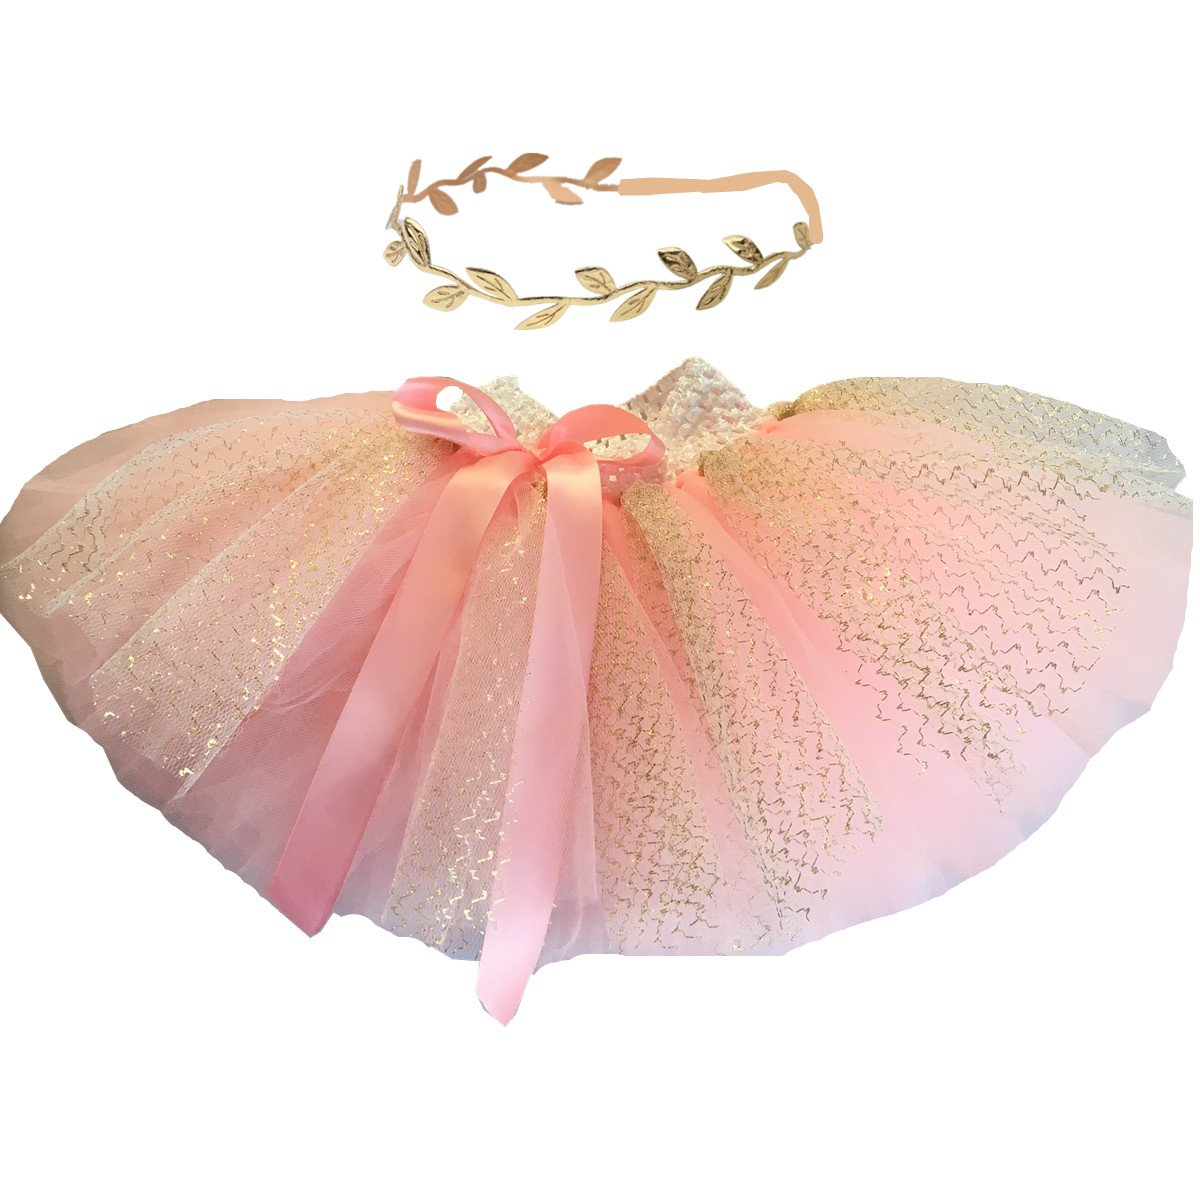 BBVESTIDO Baby Girls Tutu Skirt with Gold Headband First Birthday Outfits